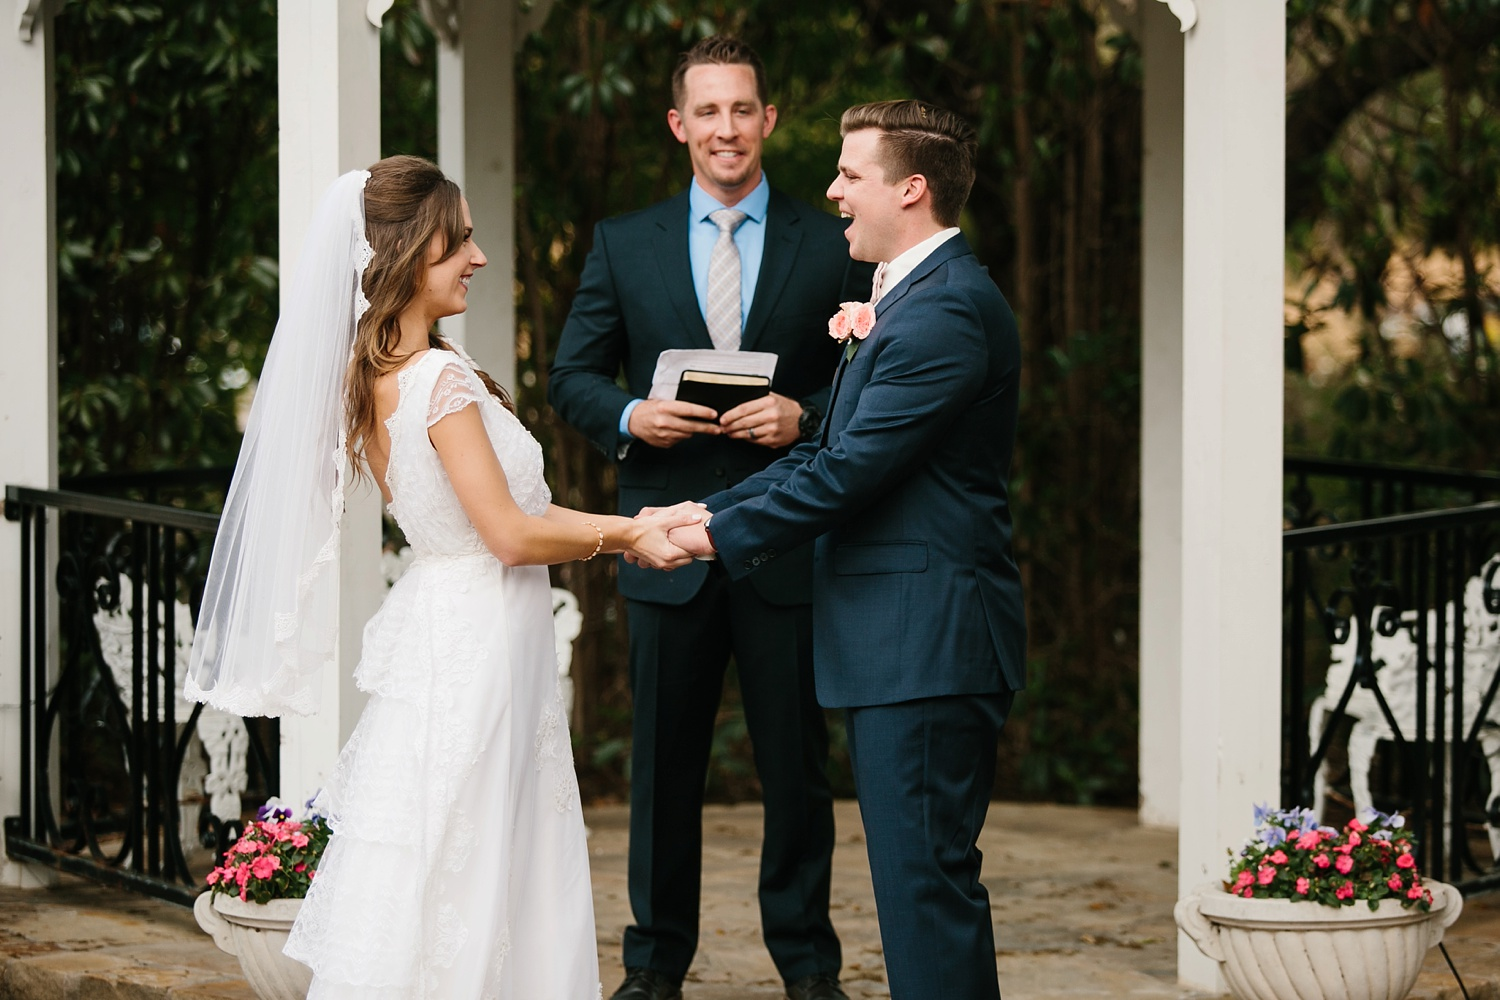 Amber + Daniel an intimate, simple, spring ceremony at Heard Craig Center and reception at Gather in McKinney, Texas by North Texas Wedding Photographer Rachel Meagan Photography 067